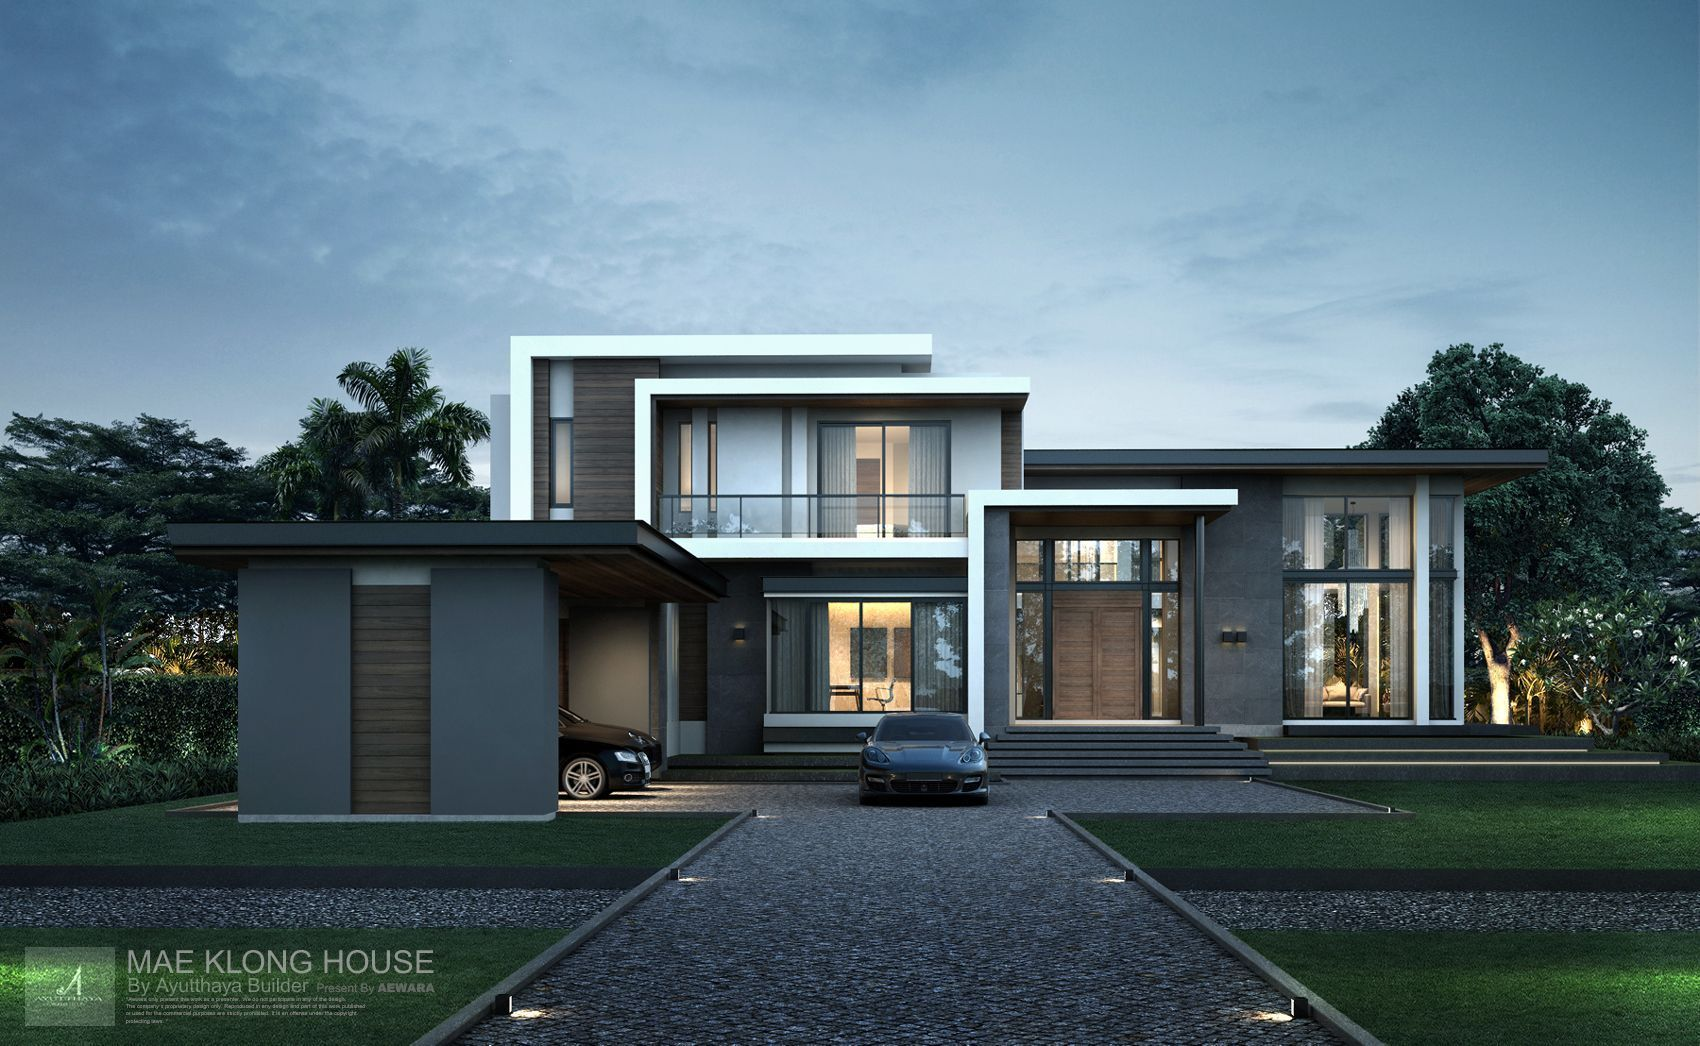 3d perspective aewara exterior 126 modern houses in 2019 - 3d home exterior design tool download ...